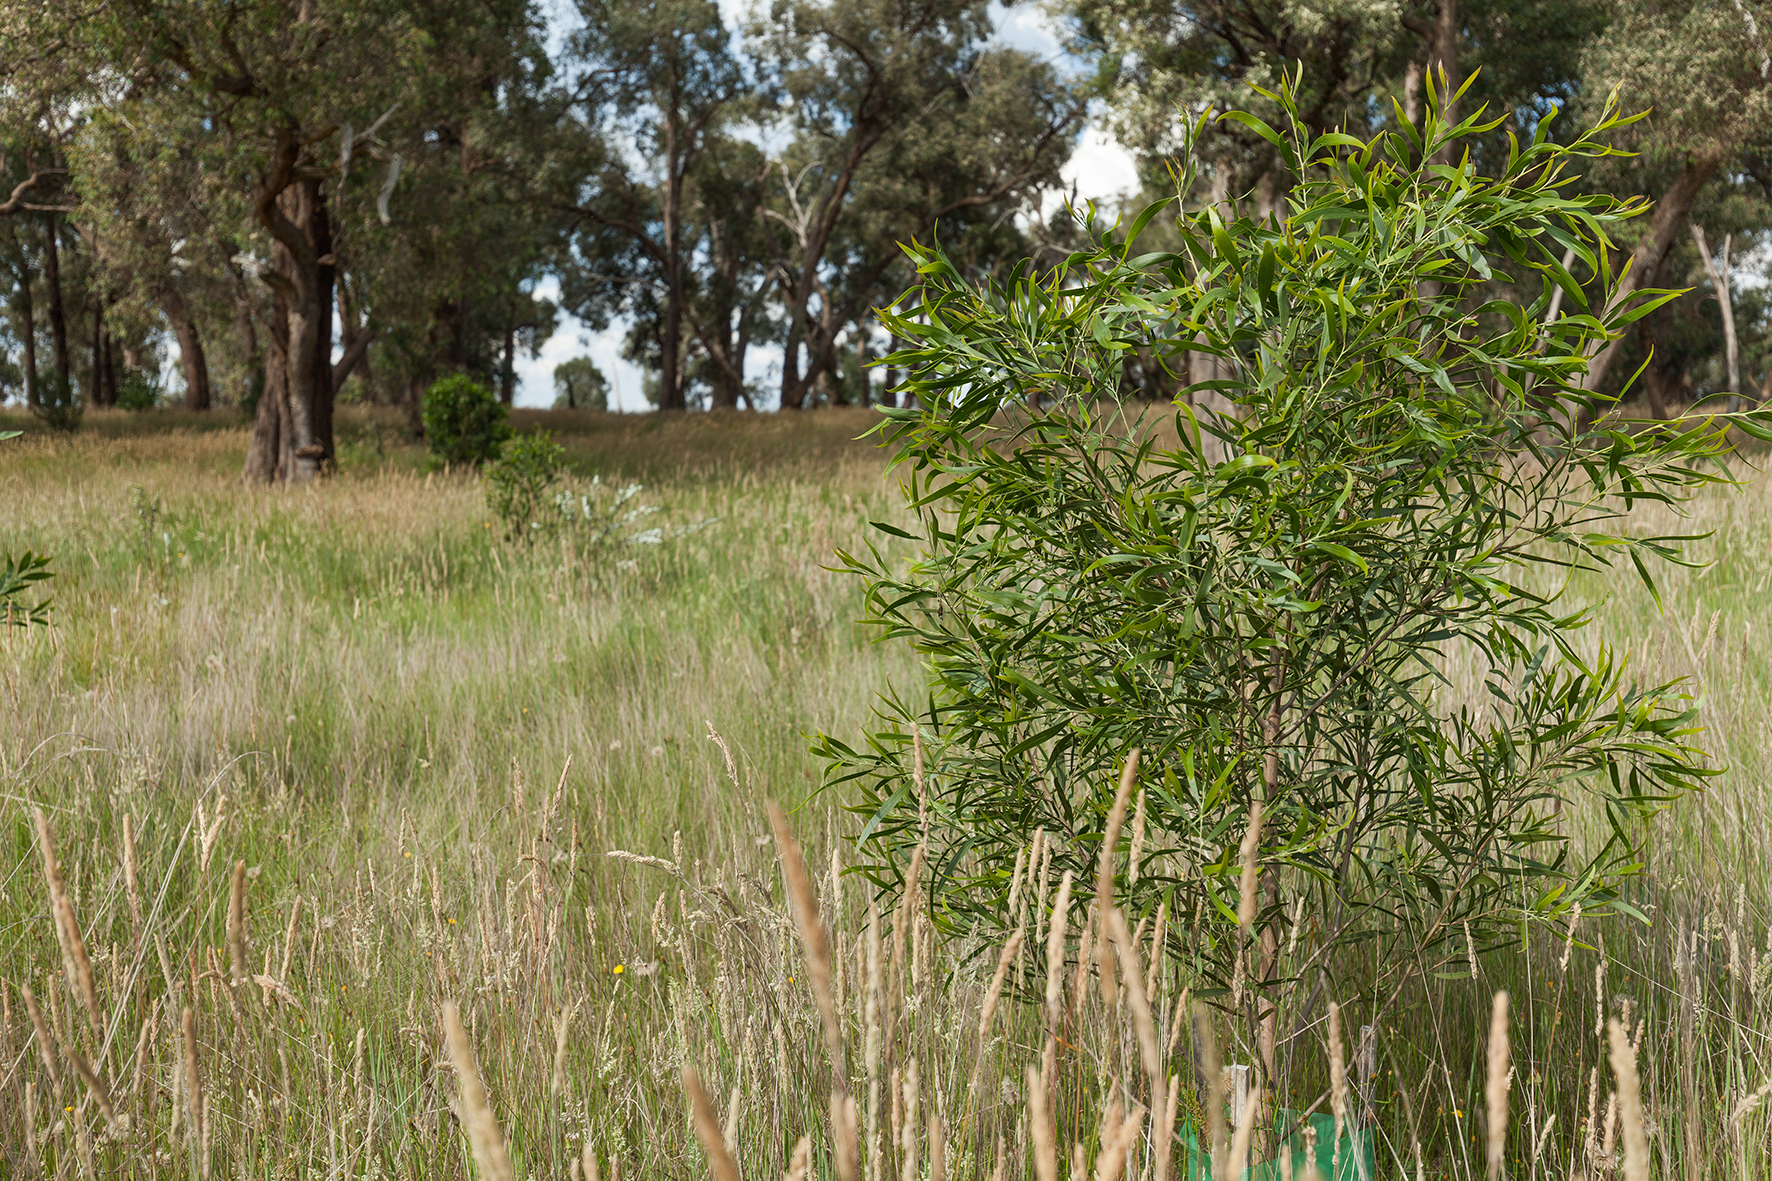 Native trees planted in paddocks